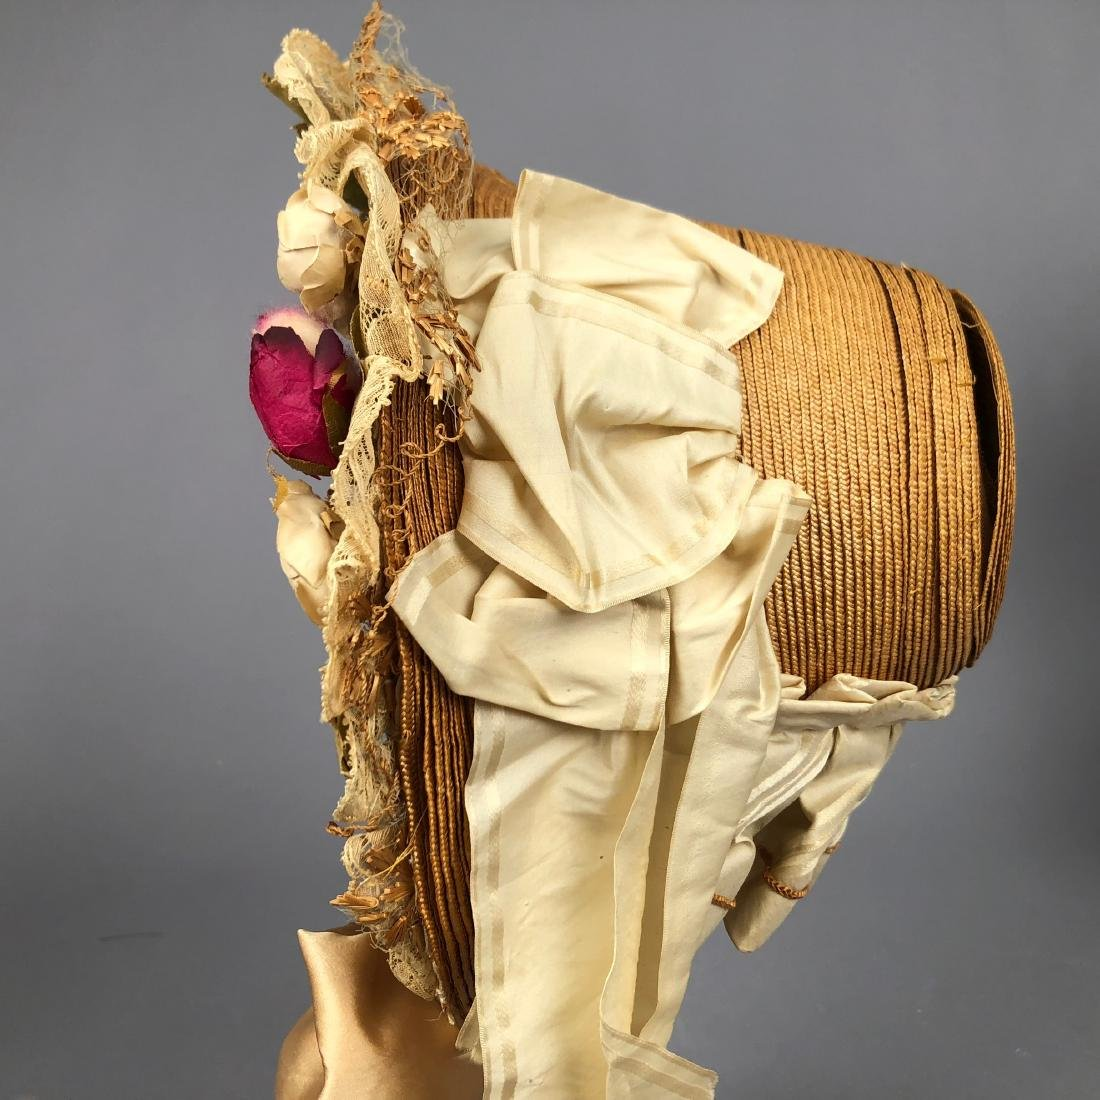 TAN STRAW LADY'S BONNET and GIRL'S HAT, 1850 - 1855 - 9